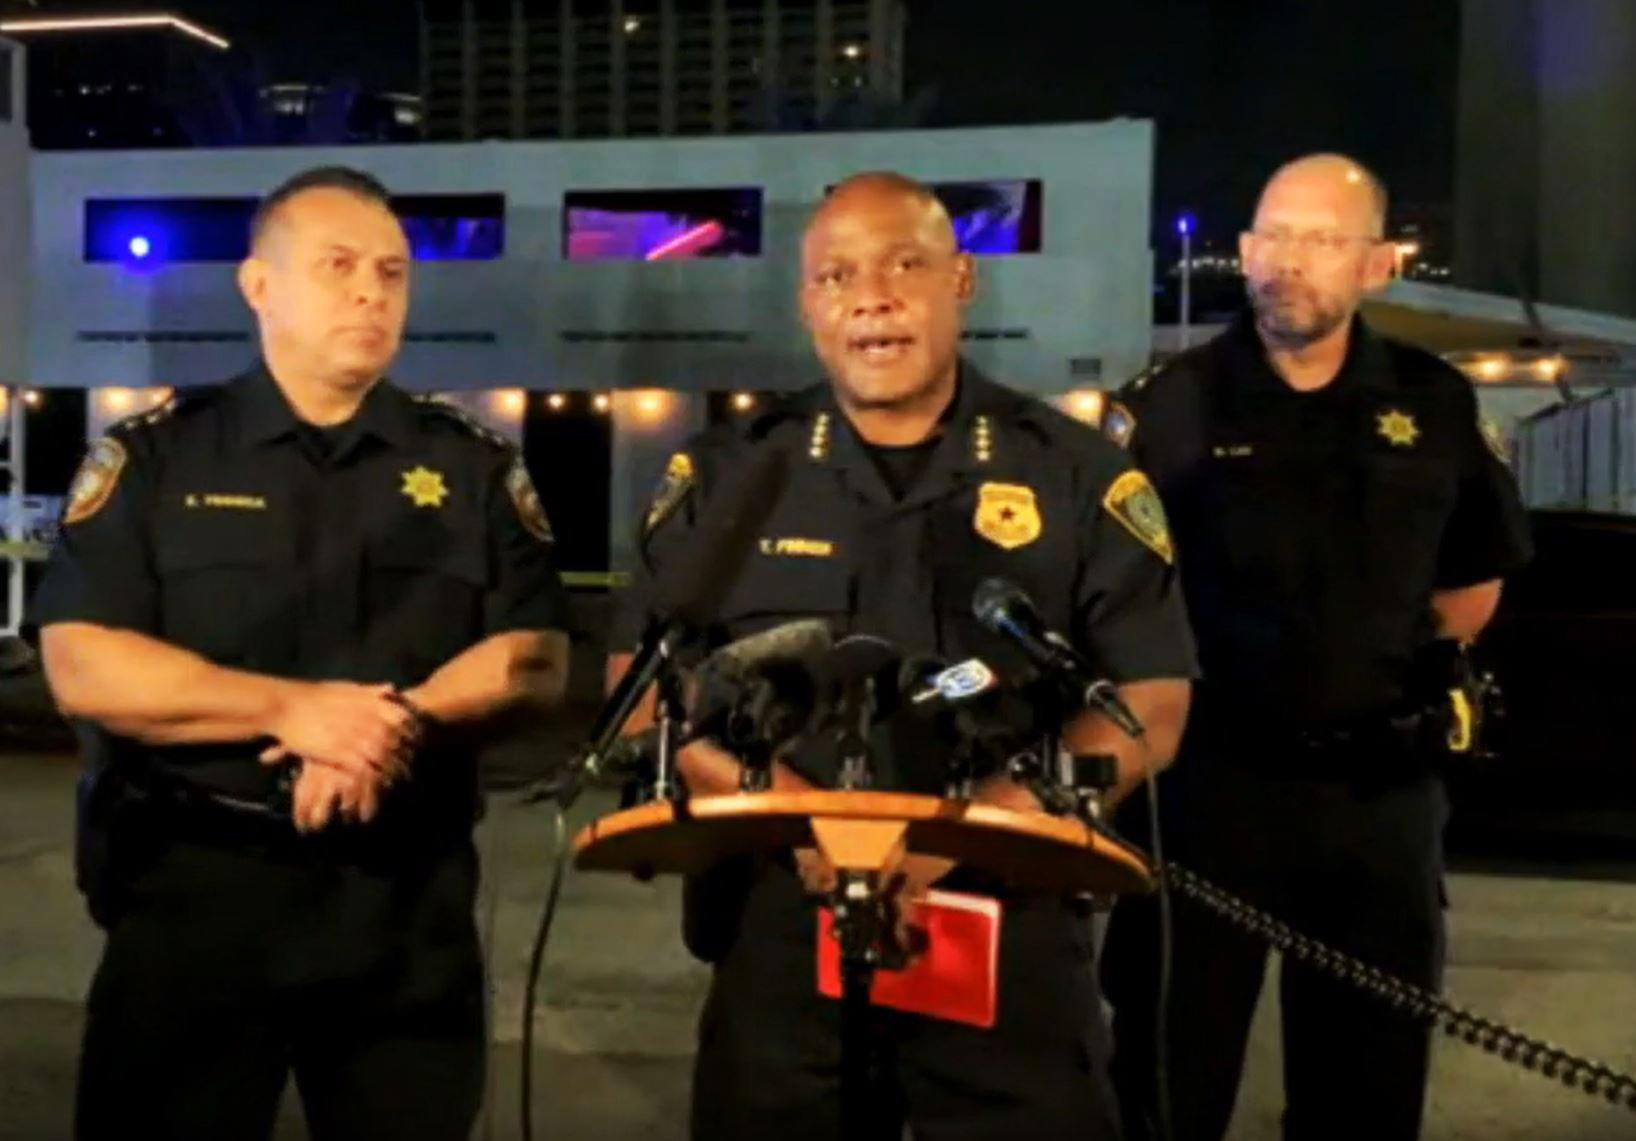 Gunman and one other person dead in shooting at Clé nightclub in Houston – Yahoo News